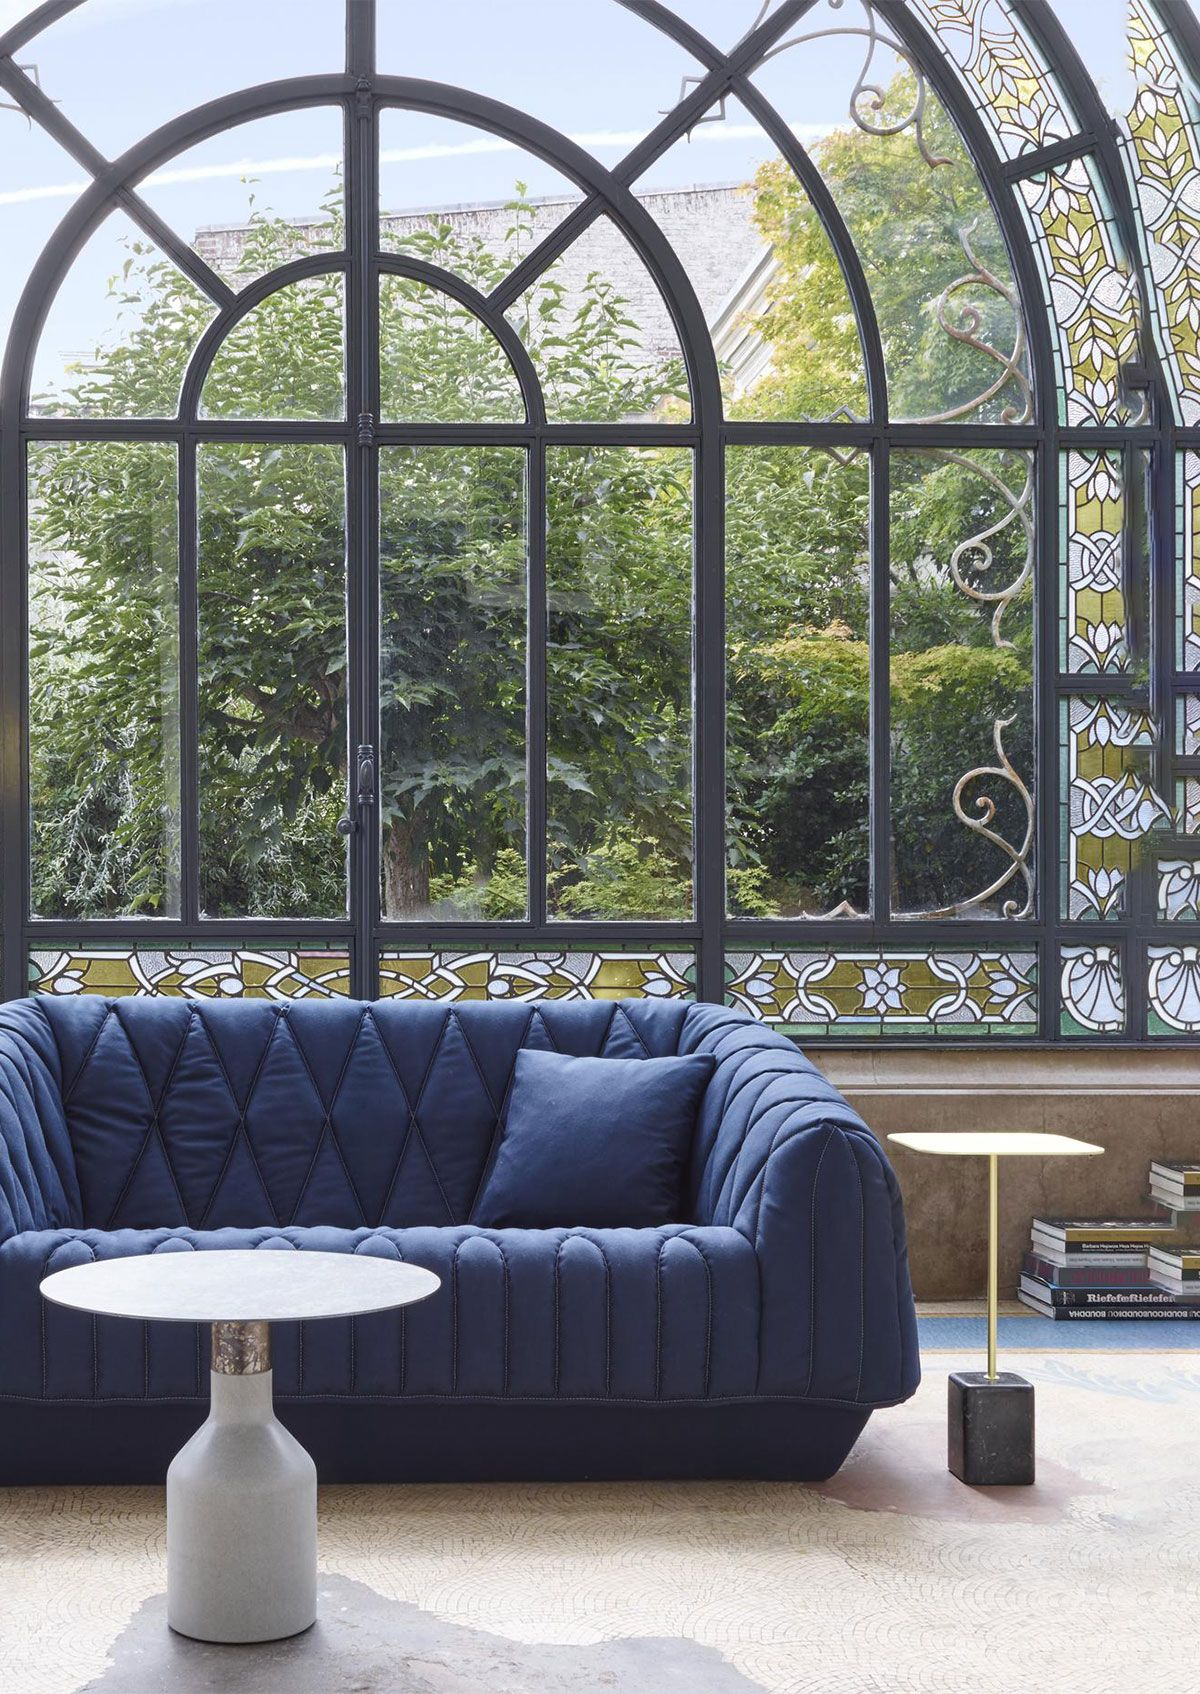 Cover 2 sofa collection designed by marie christine dorner for ligne roset available at linea